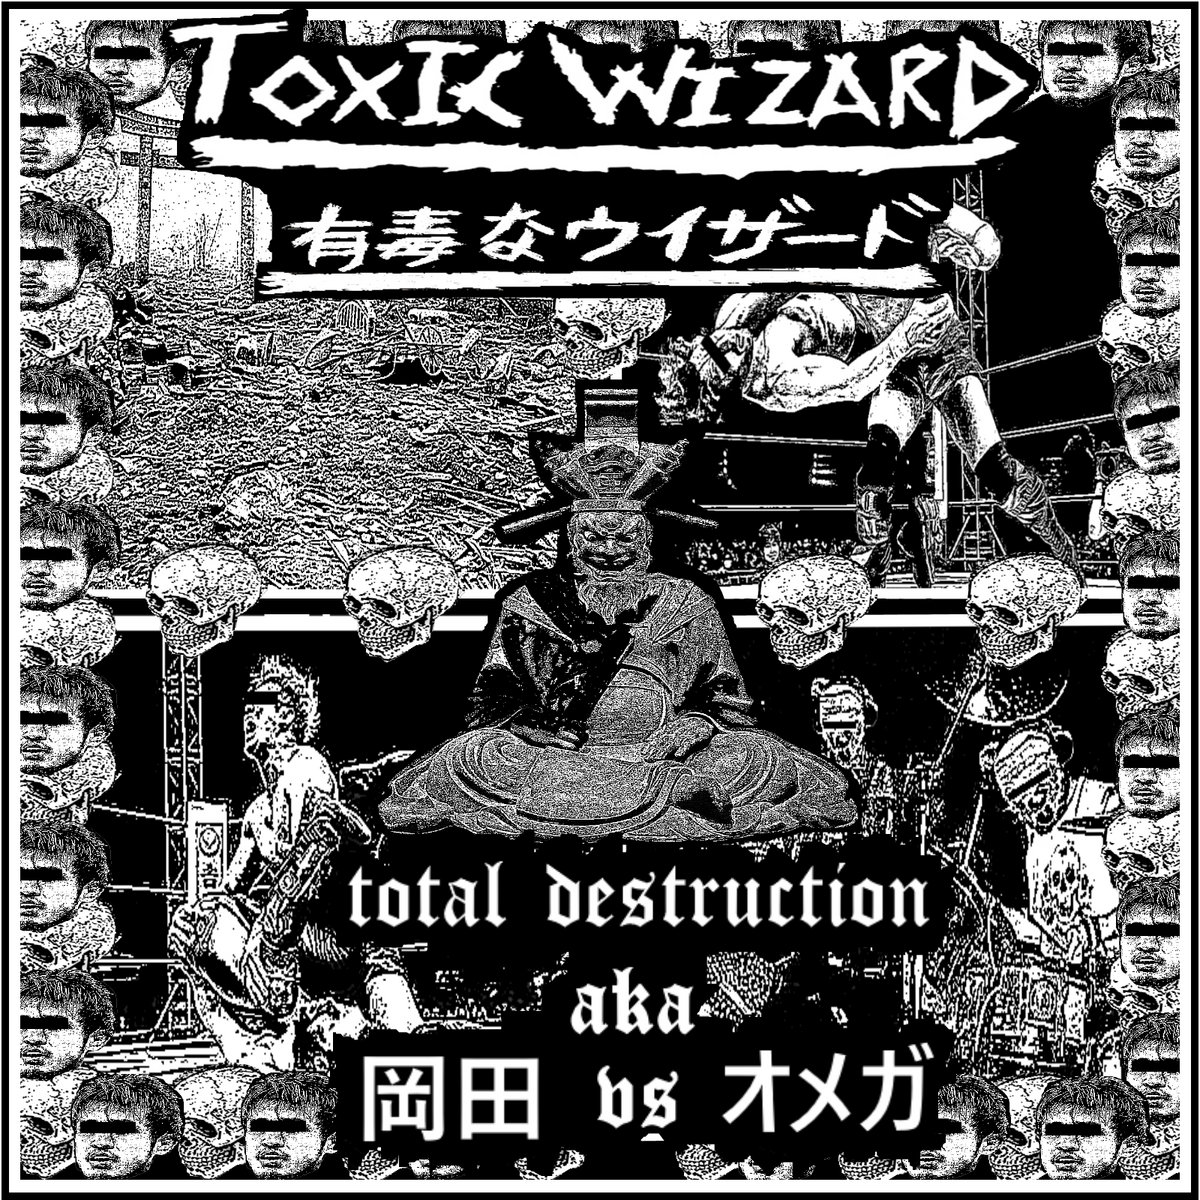 https://toxicwizard.bandcamp.com/album/total-destruction-aka-vs